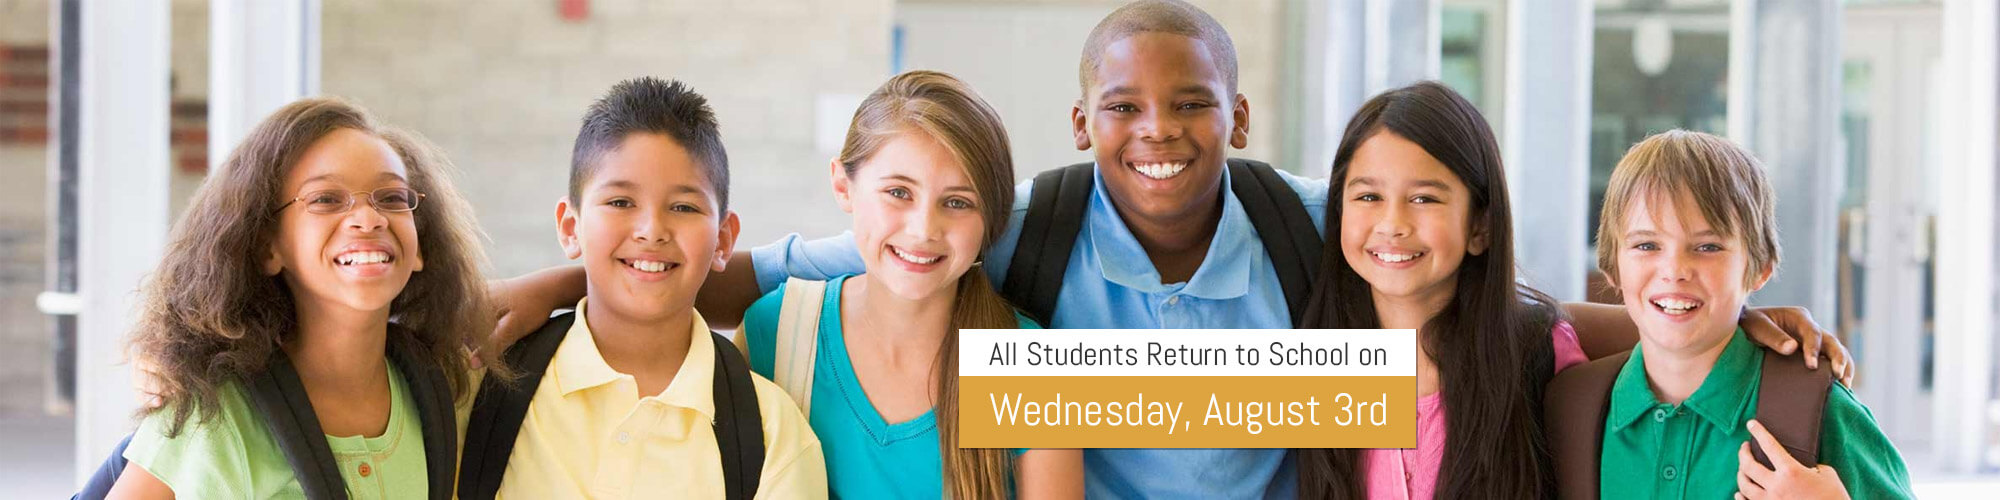 All Students Return to School on Wednesday, August 3rd